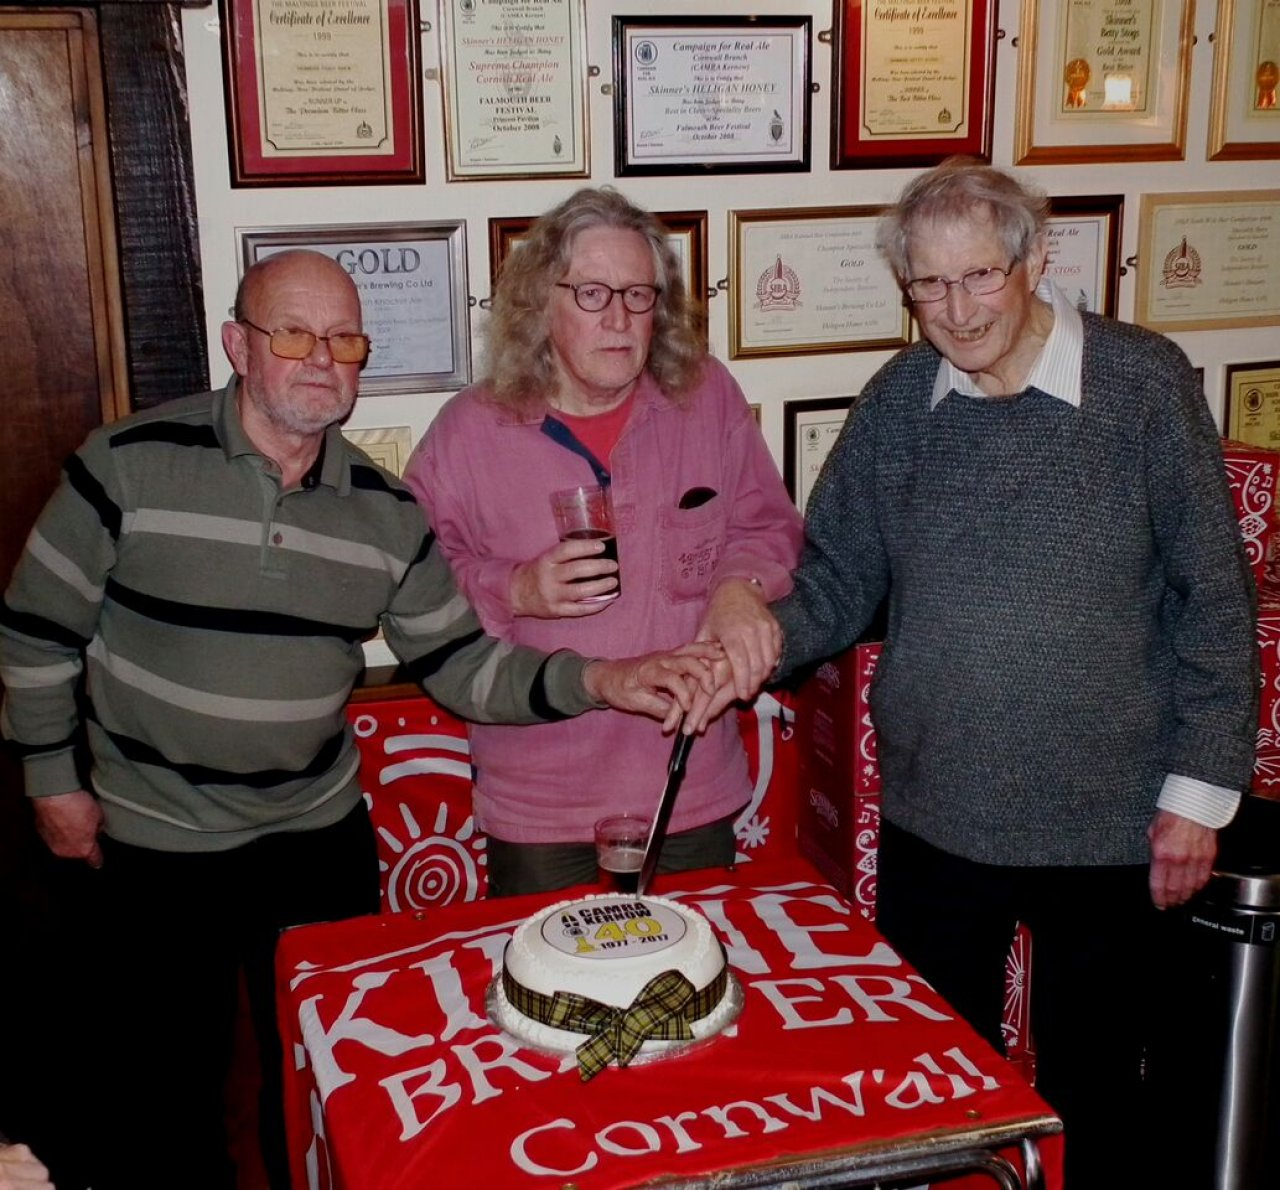 Kernow CAMRA founding members cutting the 40th Anniversary cake .Brian Phillips, Richard Cunningham and Gerry Bazin.